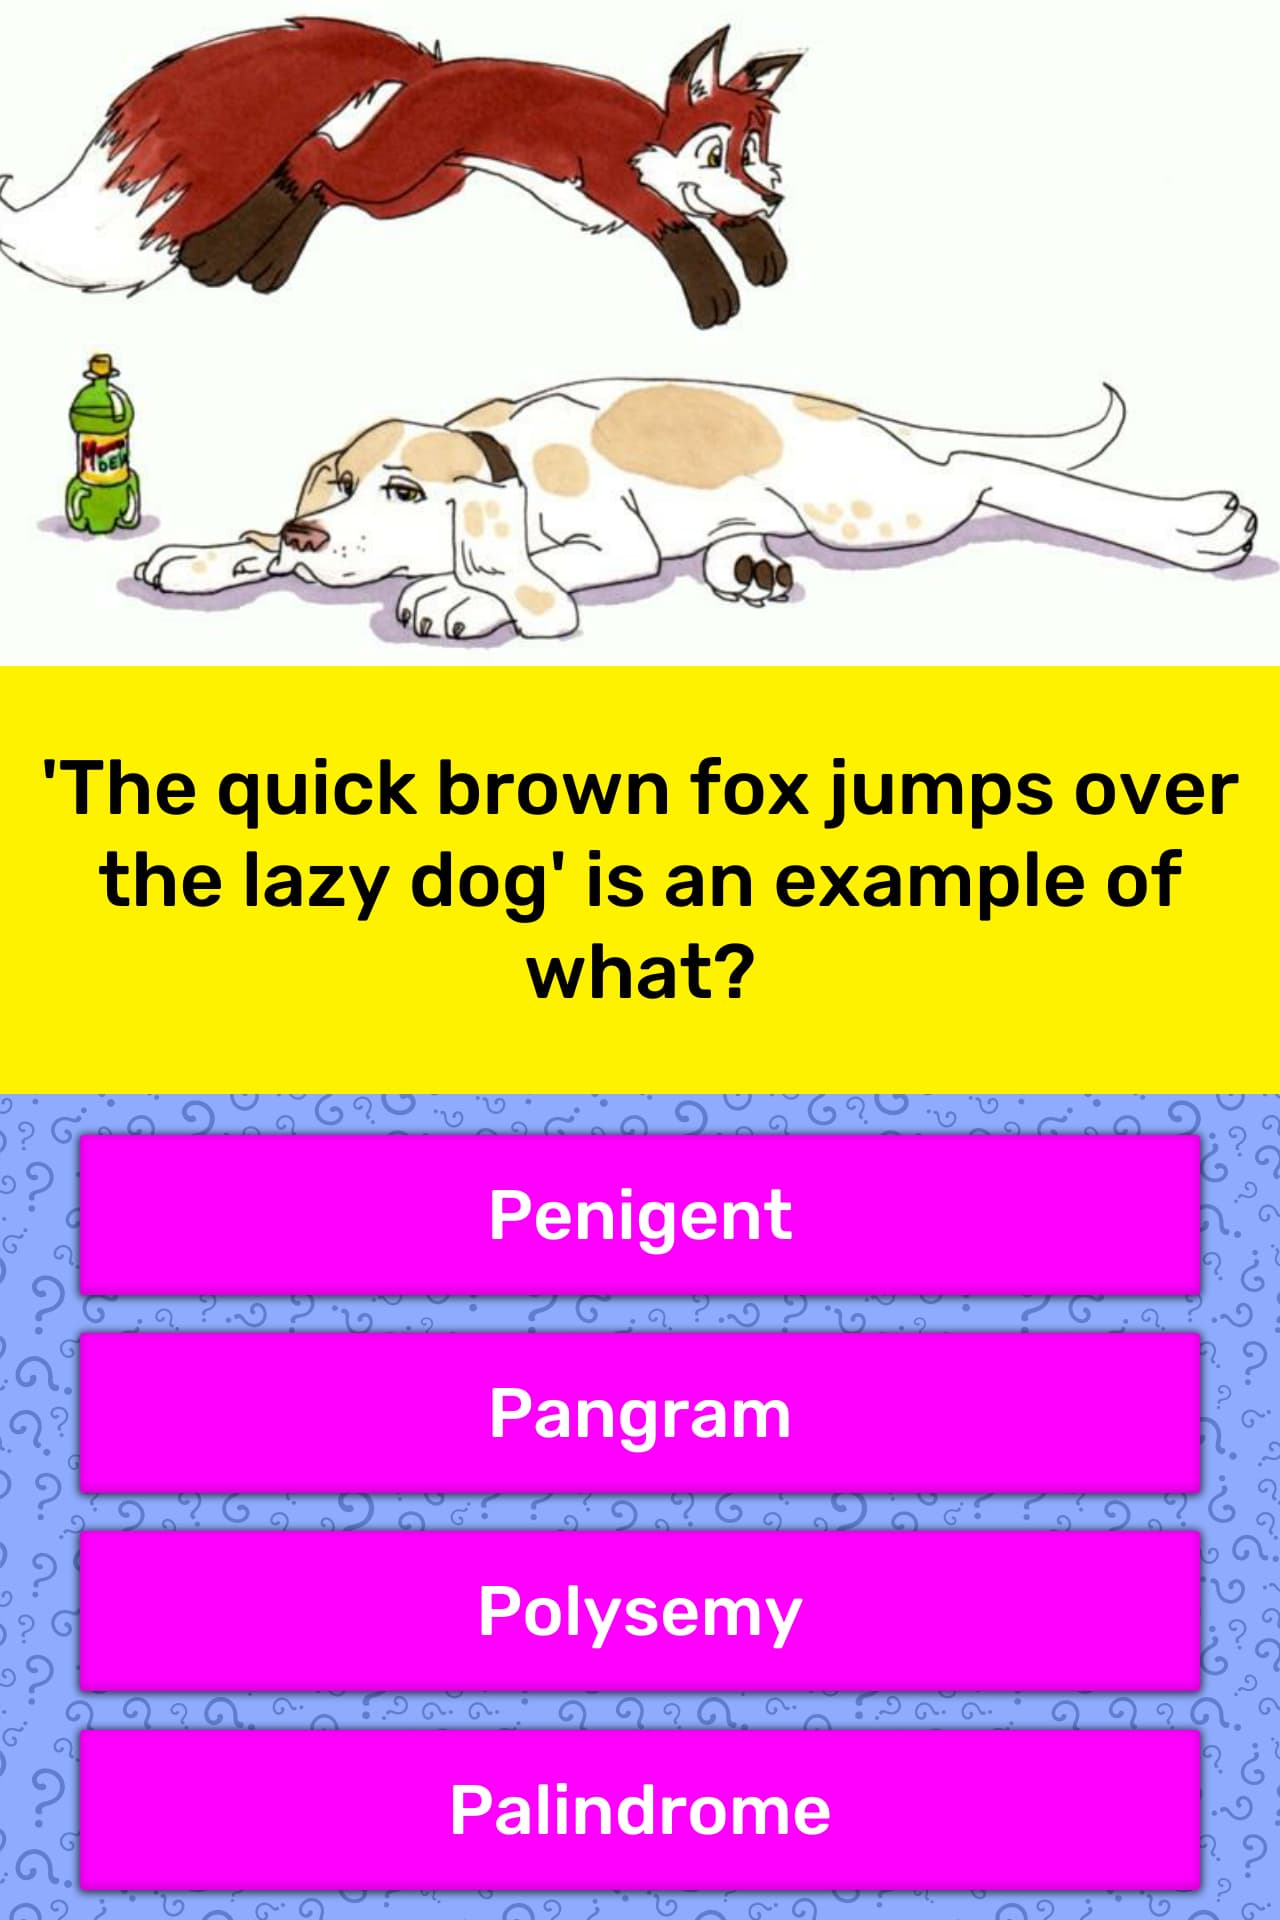 The quick brown fox jumps over the      Trivia Answers